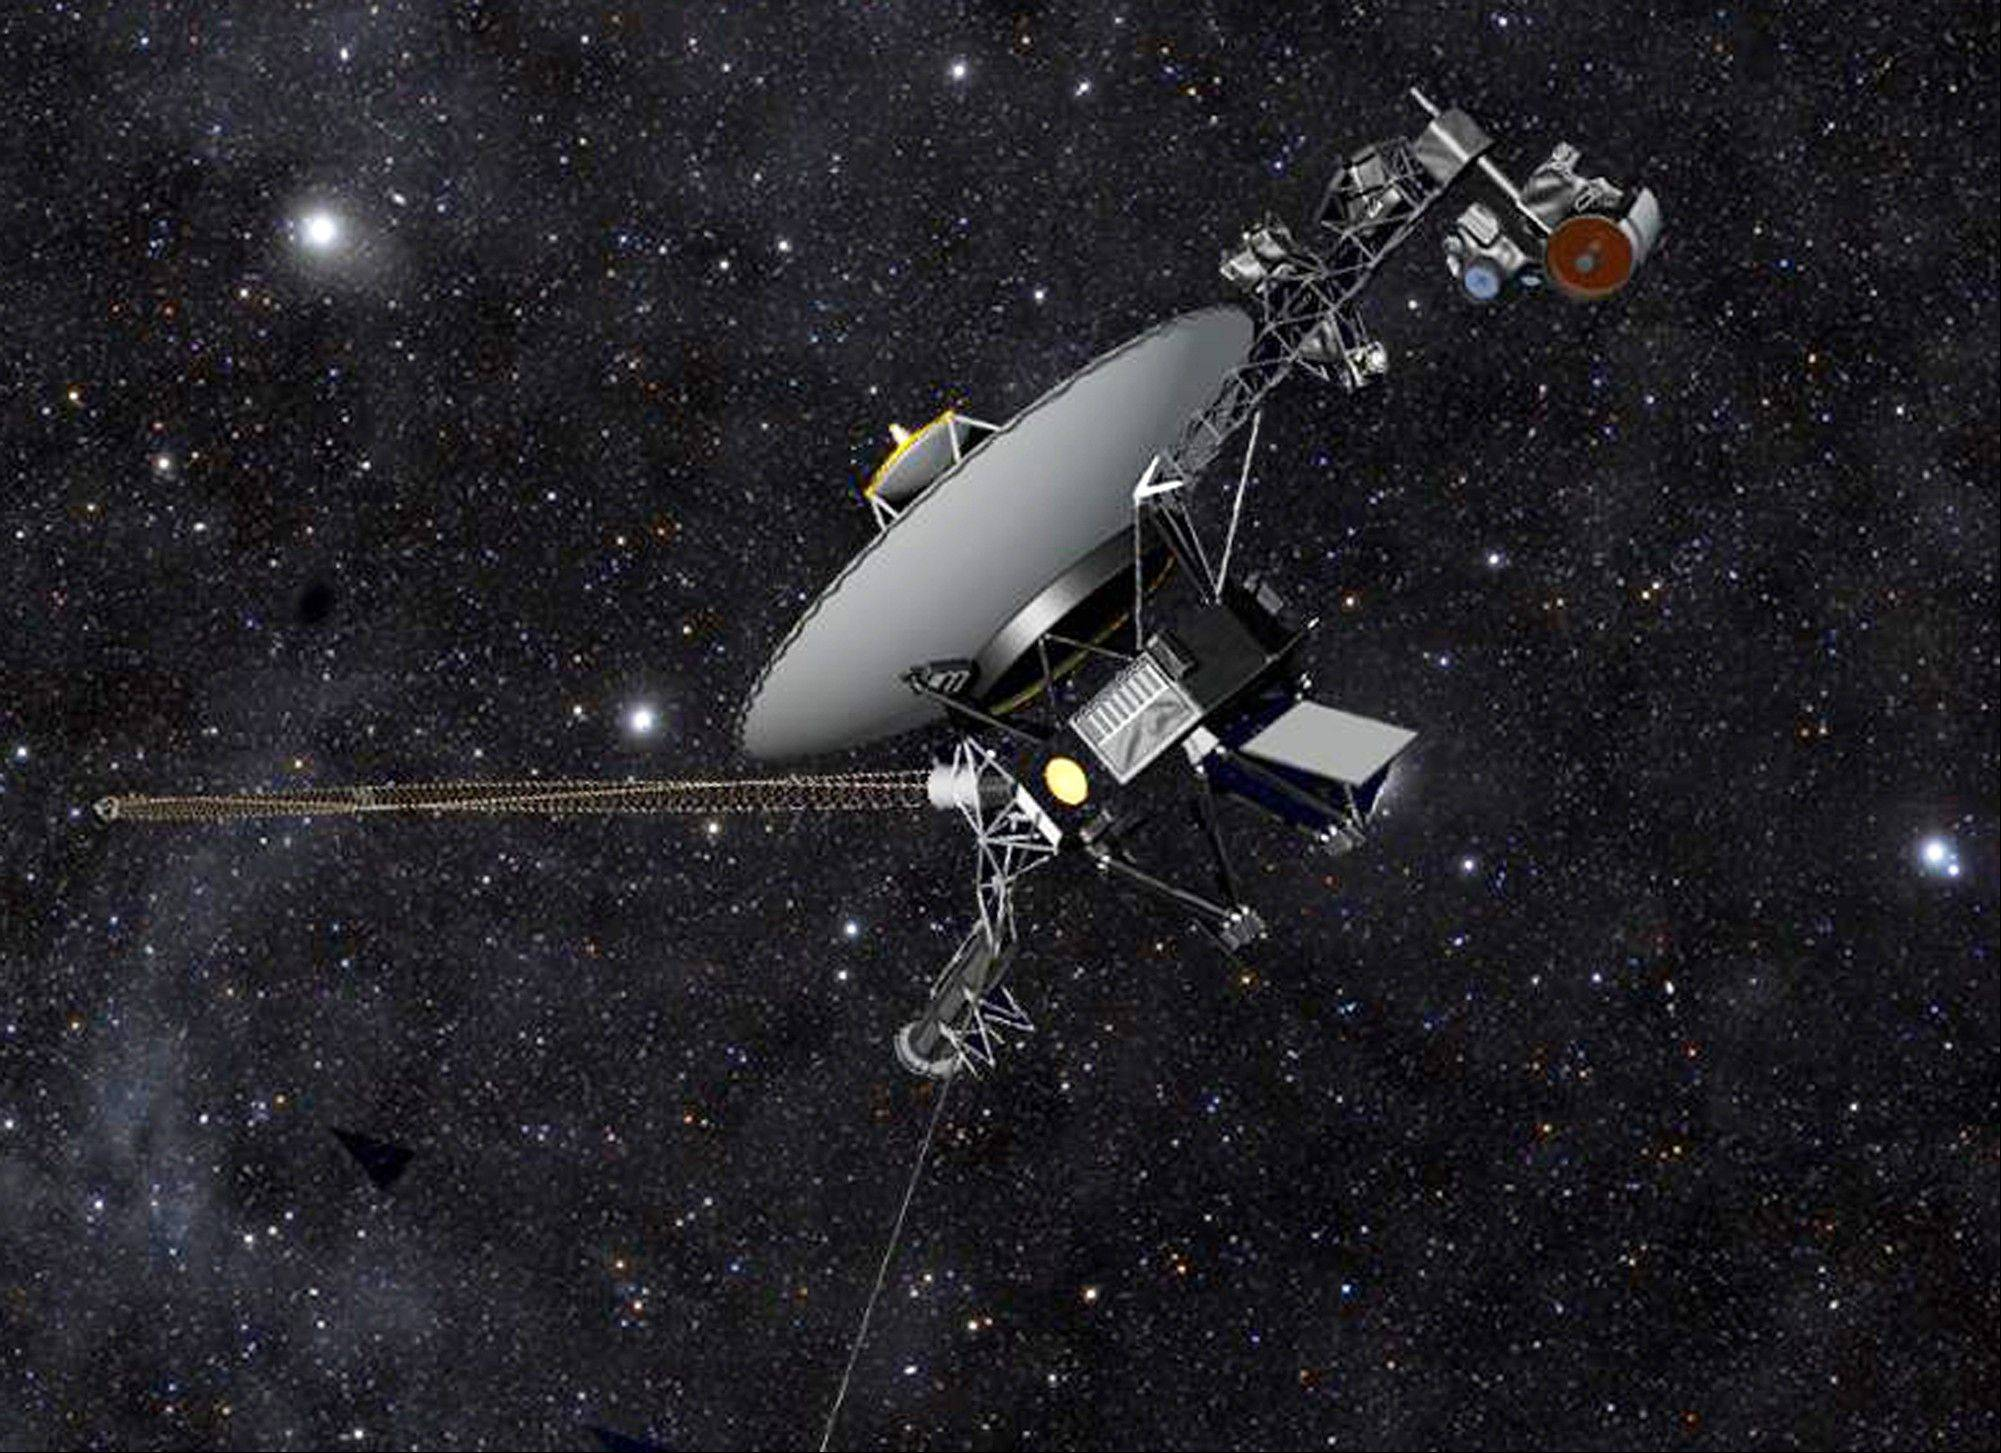 The Voyager 1 spacecraft has been barreling through space for more than three decades.